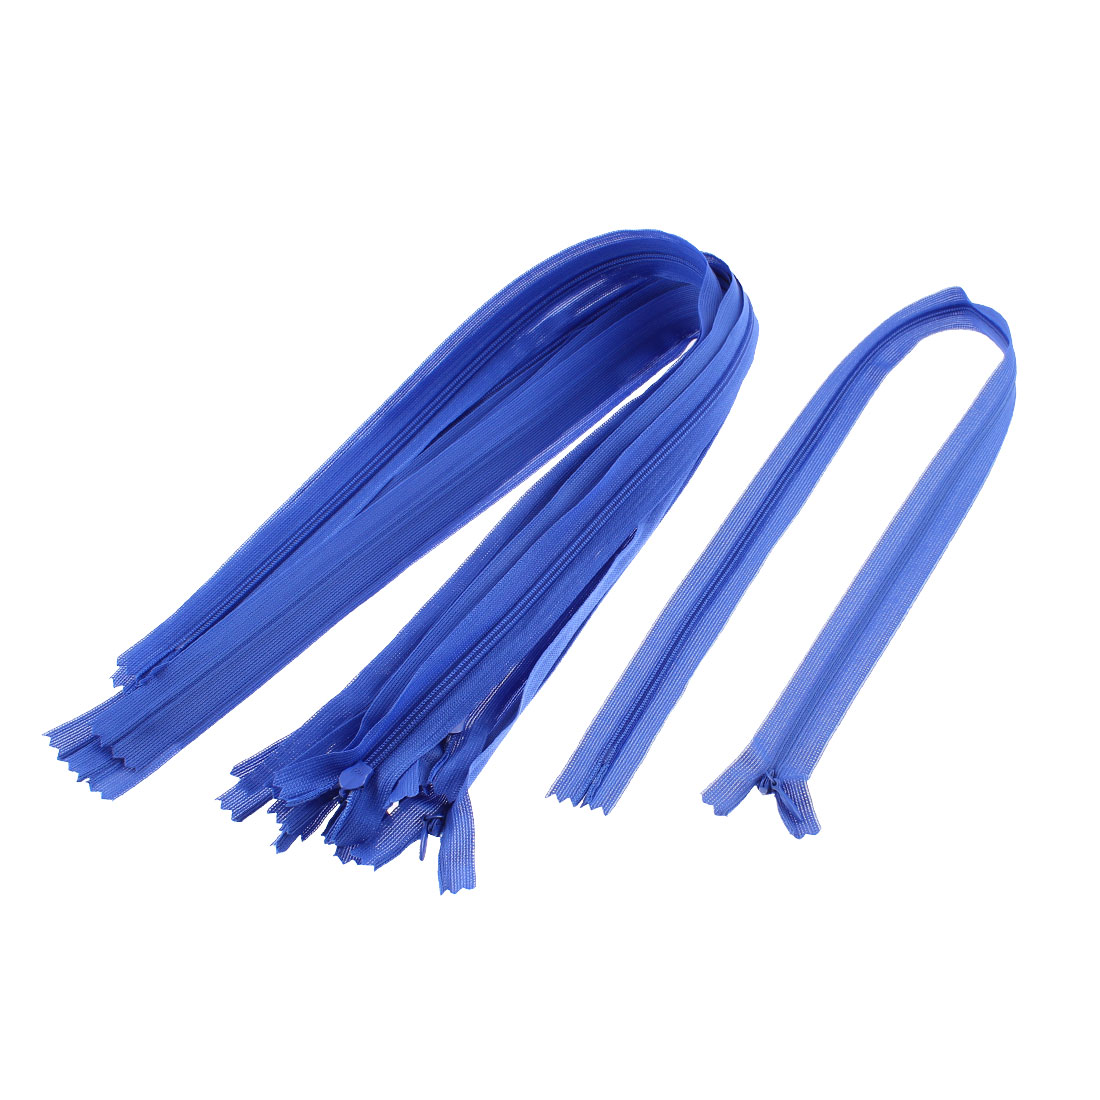 Black Nylon Coil Close End Zippers Tailor Sewing Tools 24-inch 10 Pcs